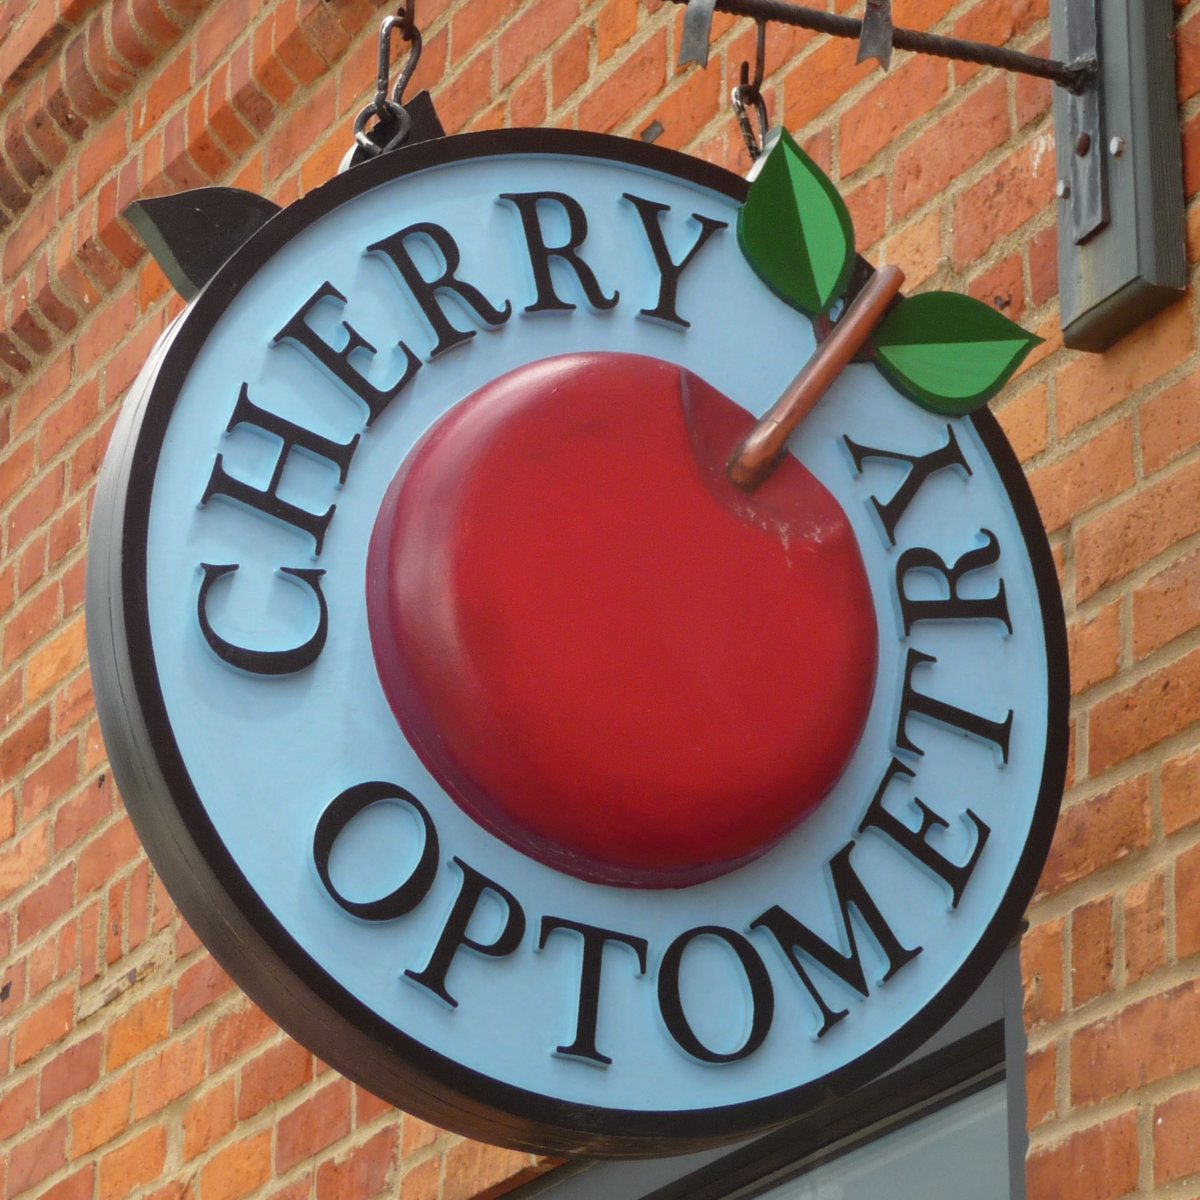 Cherry Optometry